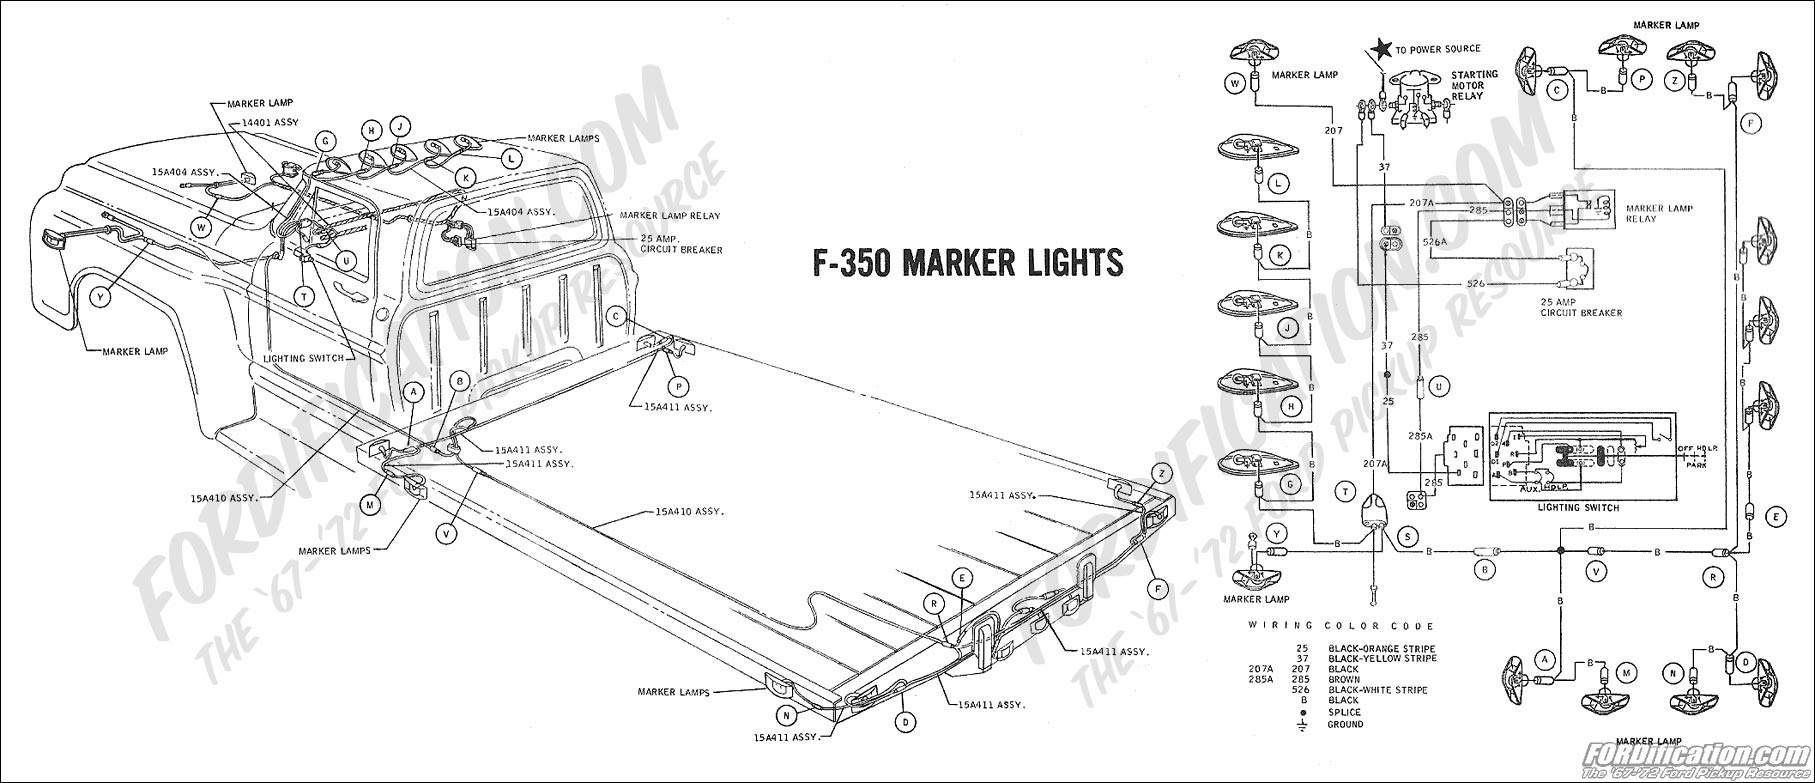 hight resolution of 1969 f 350 marker lights ford truck technical drawings and schematics